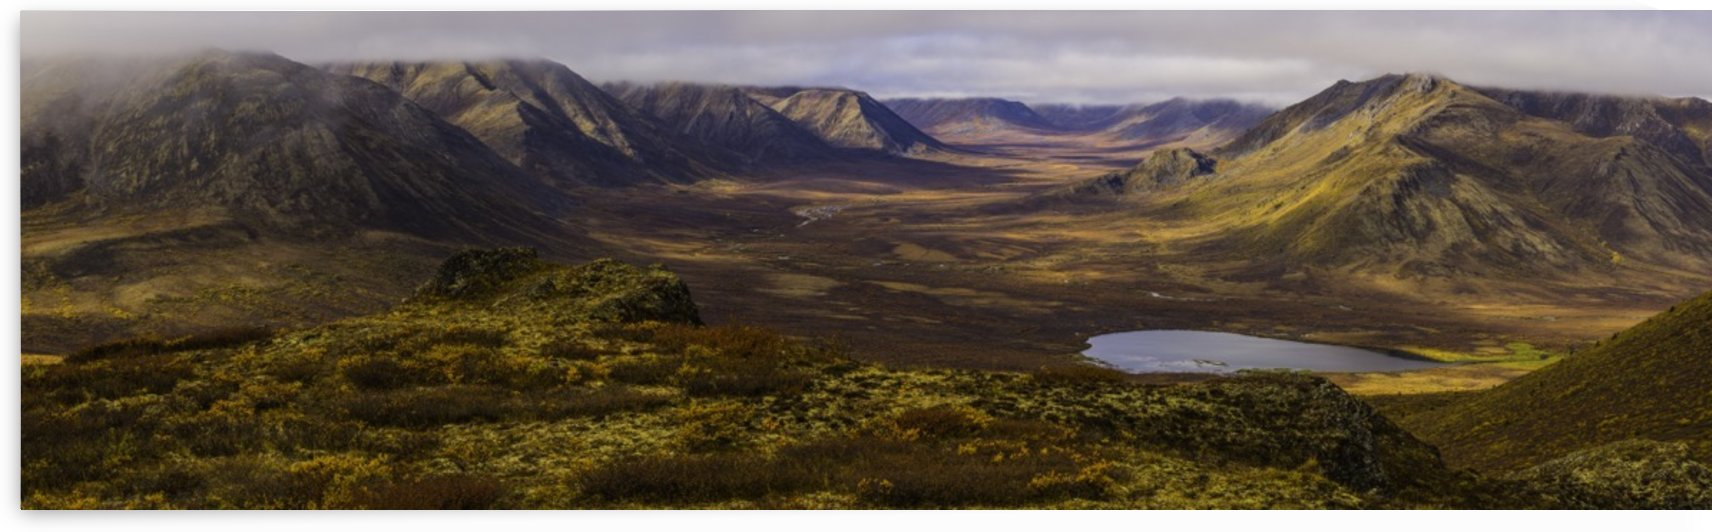 Panoramic image of the Blackstone Valley in autumn colours along the Dempster Highway; Yukon, Canada by PacificStock